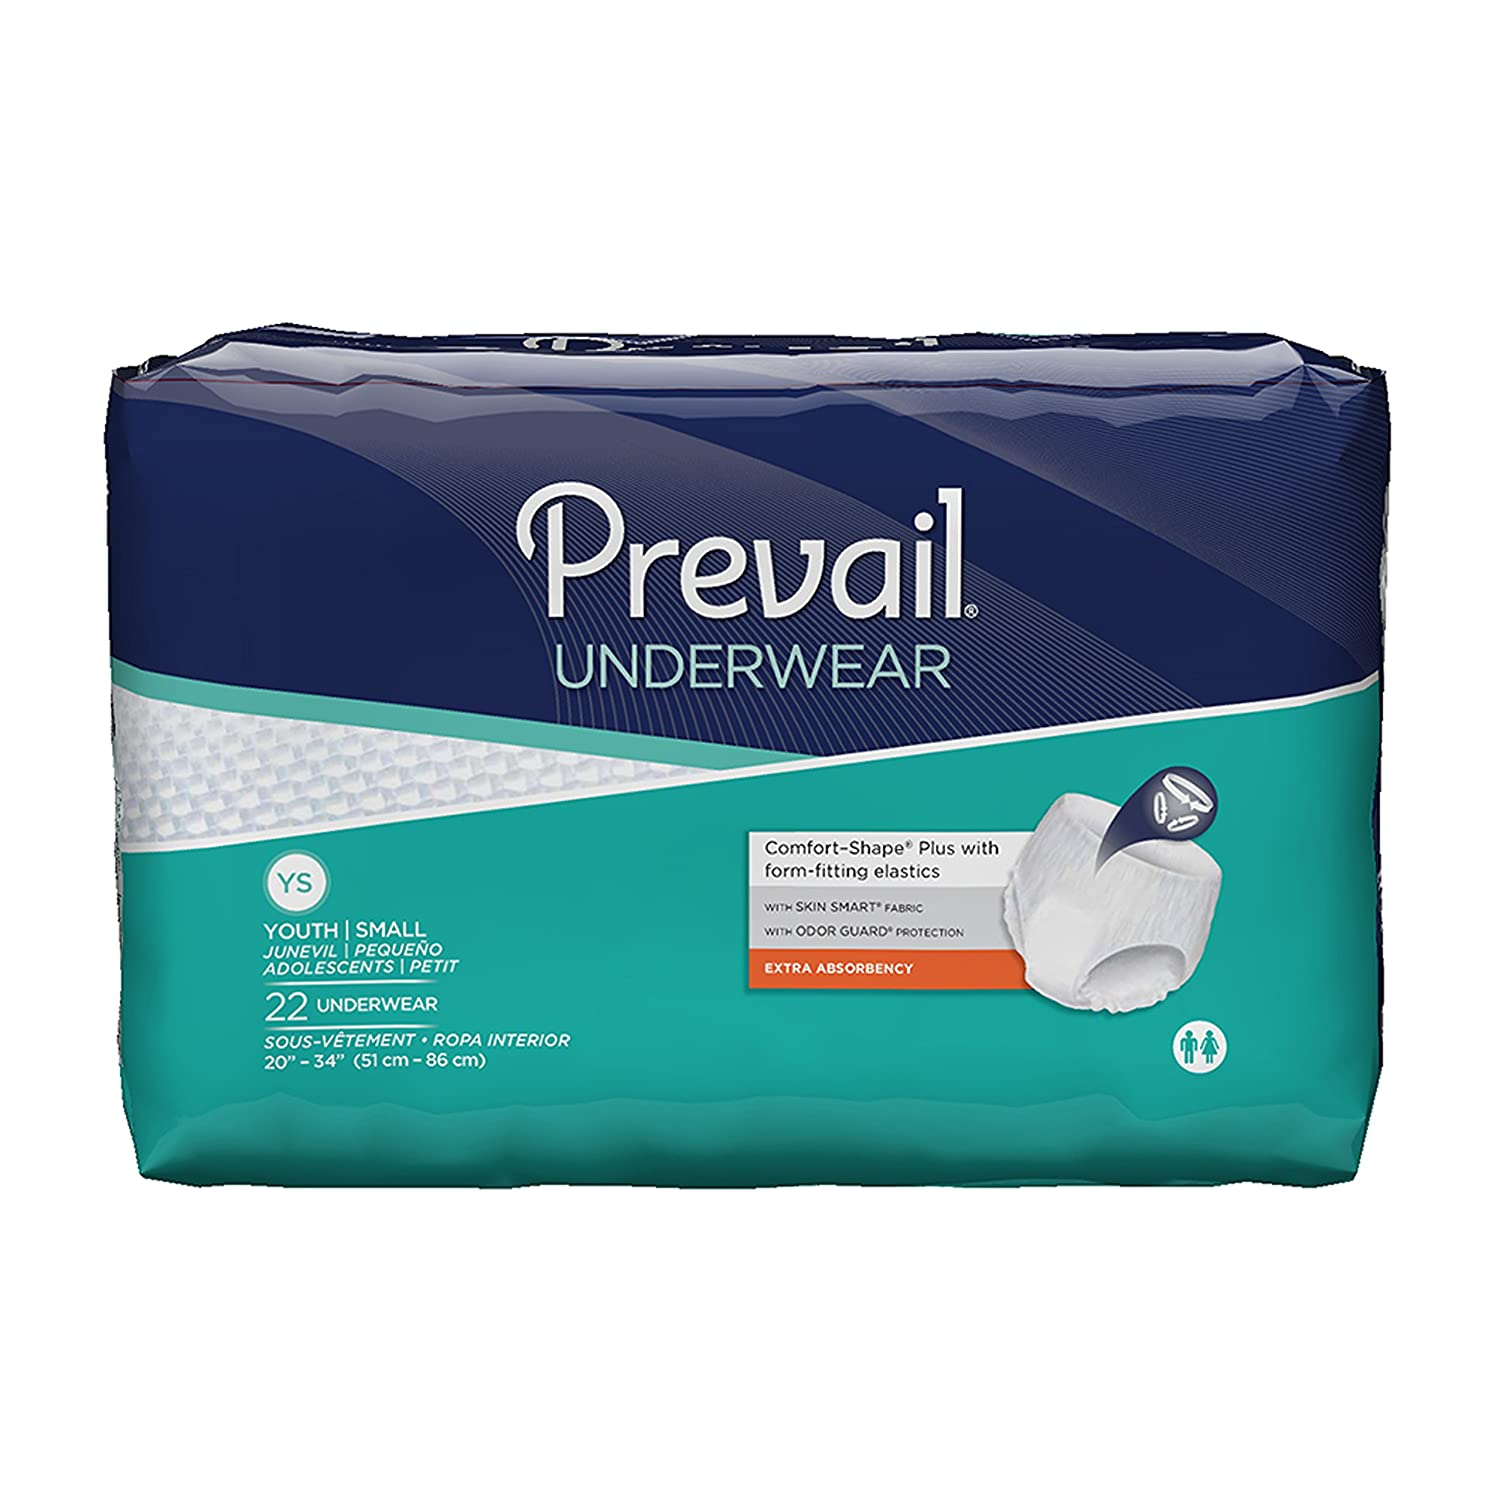 Amazon.com: Prevail Extra Absorbency Incontinence Underwear, Medium, 20-Count: Health & Personal Care